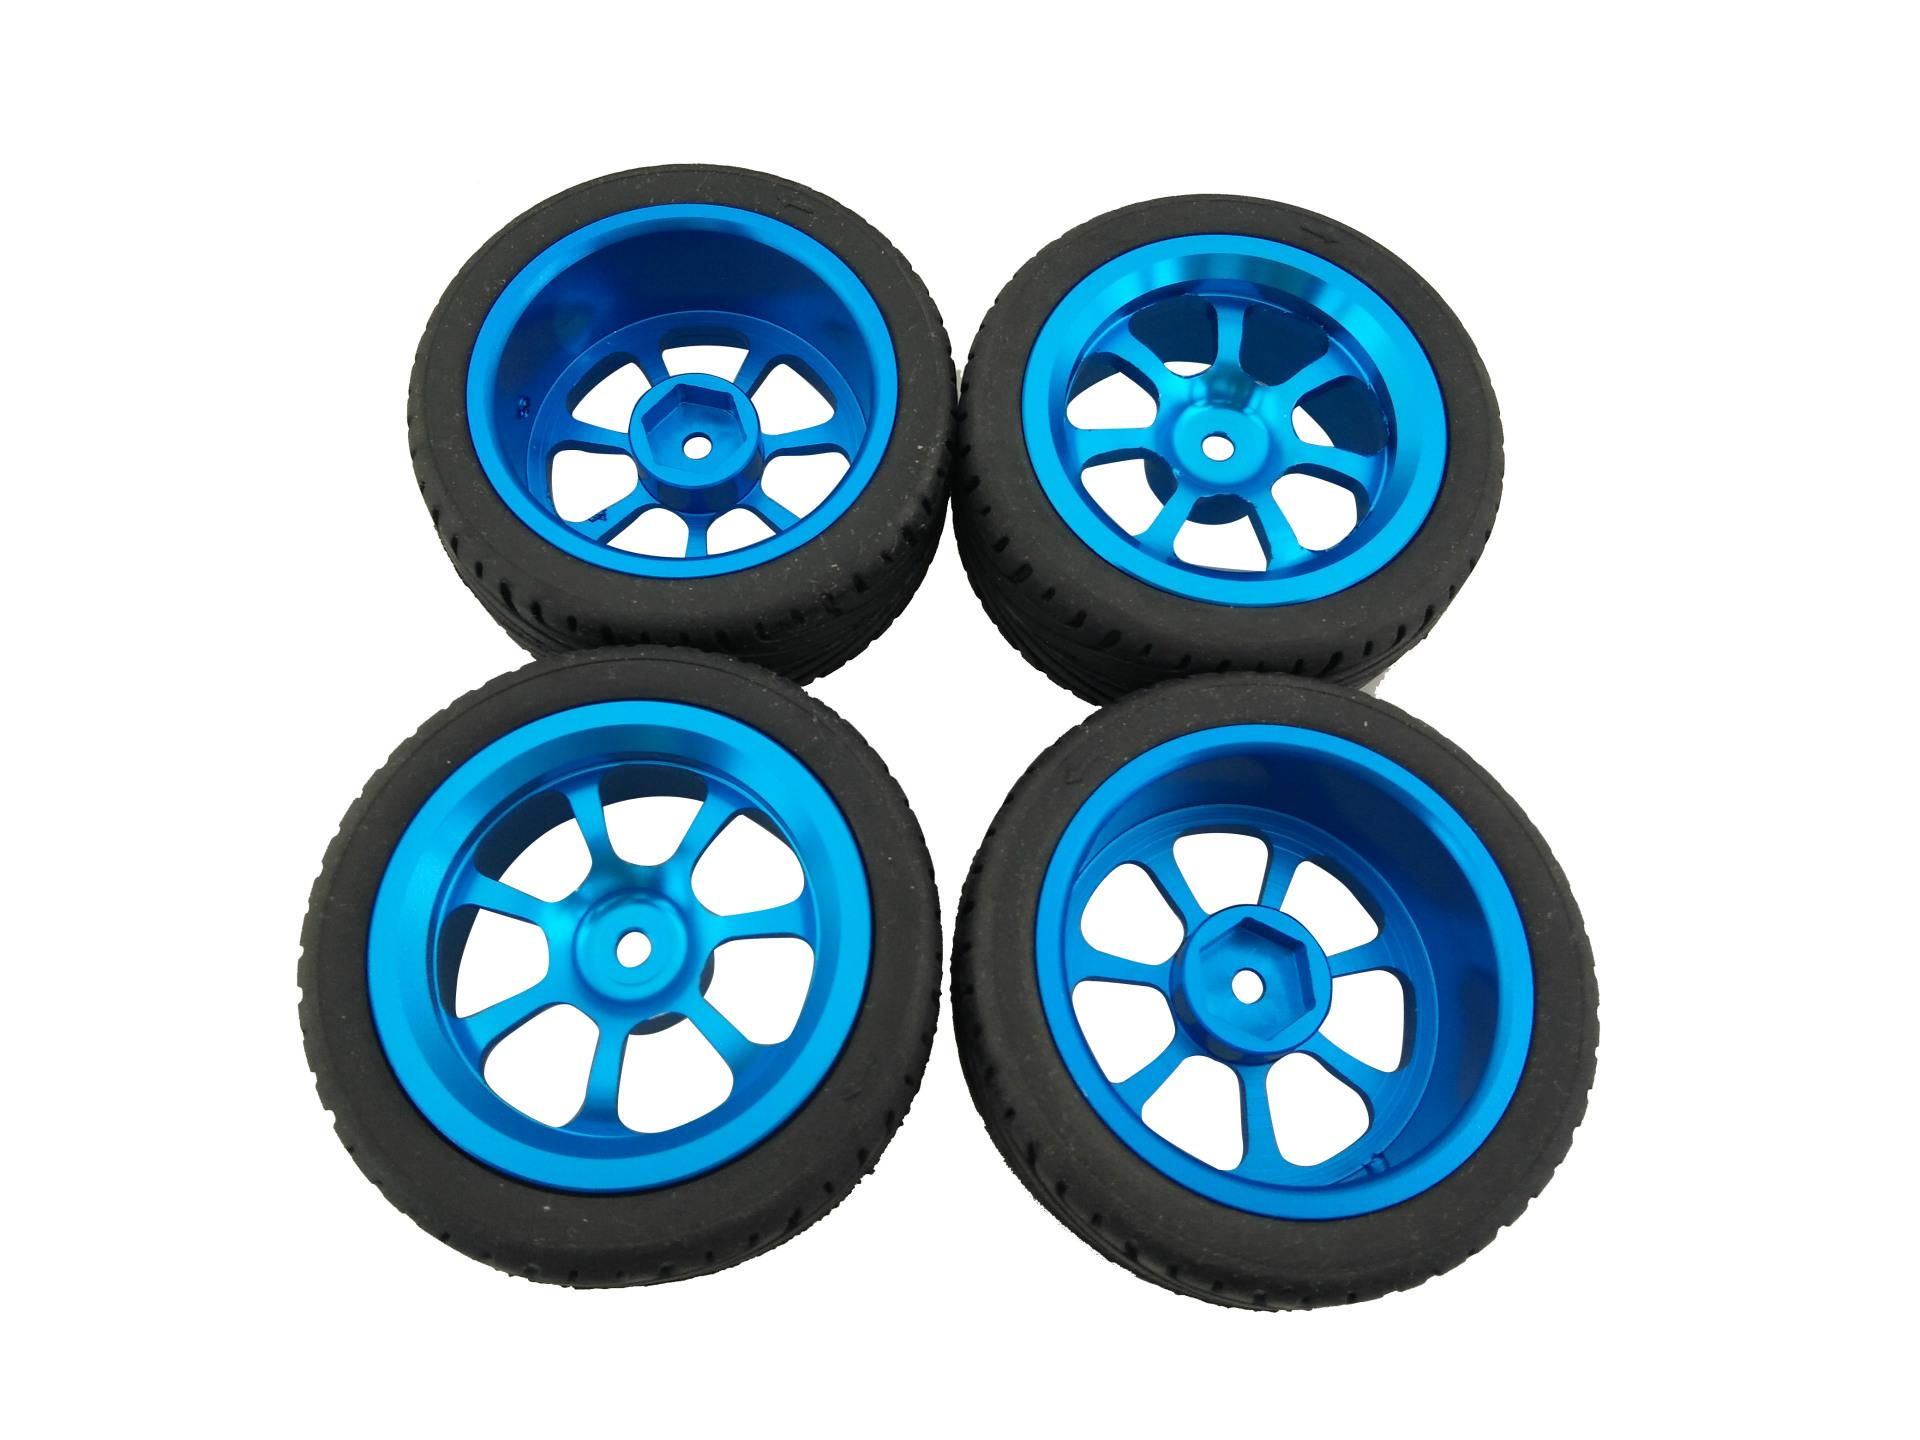 Ym 4pcs Alloy Rims & Tires Rc Car Wheels For 1/18 Wltoys A959-B A979-B A959 A969 By Yingdd Mall.